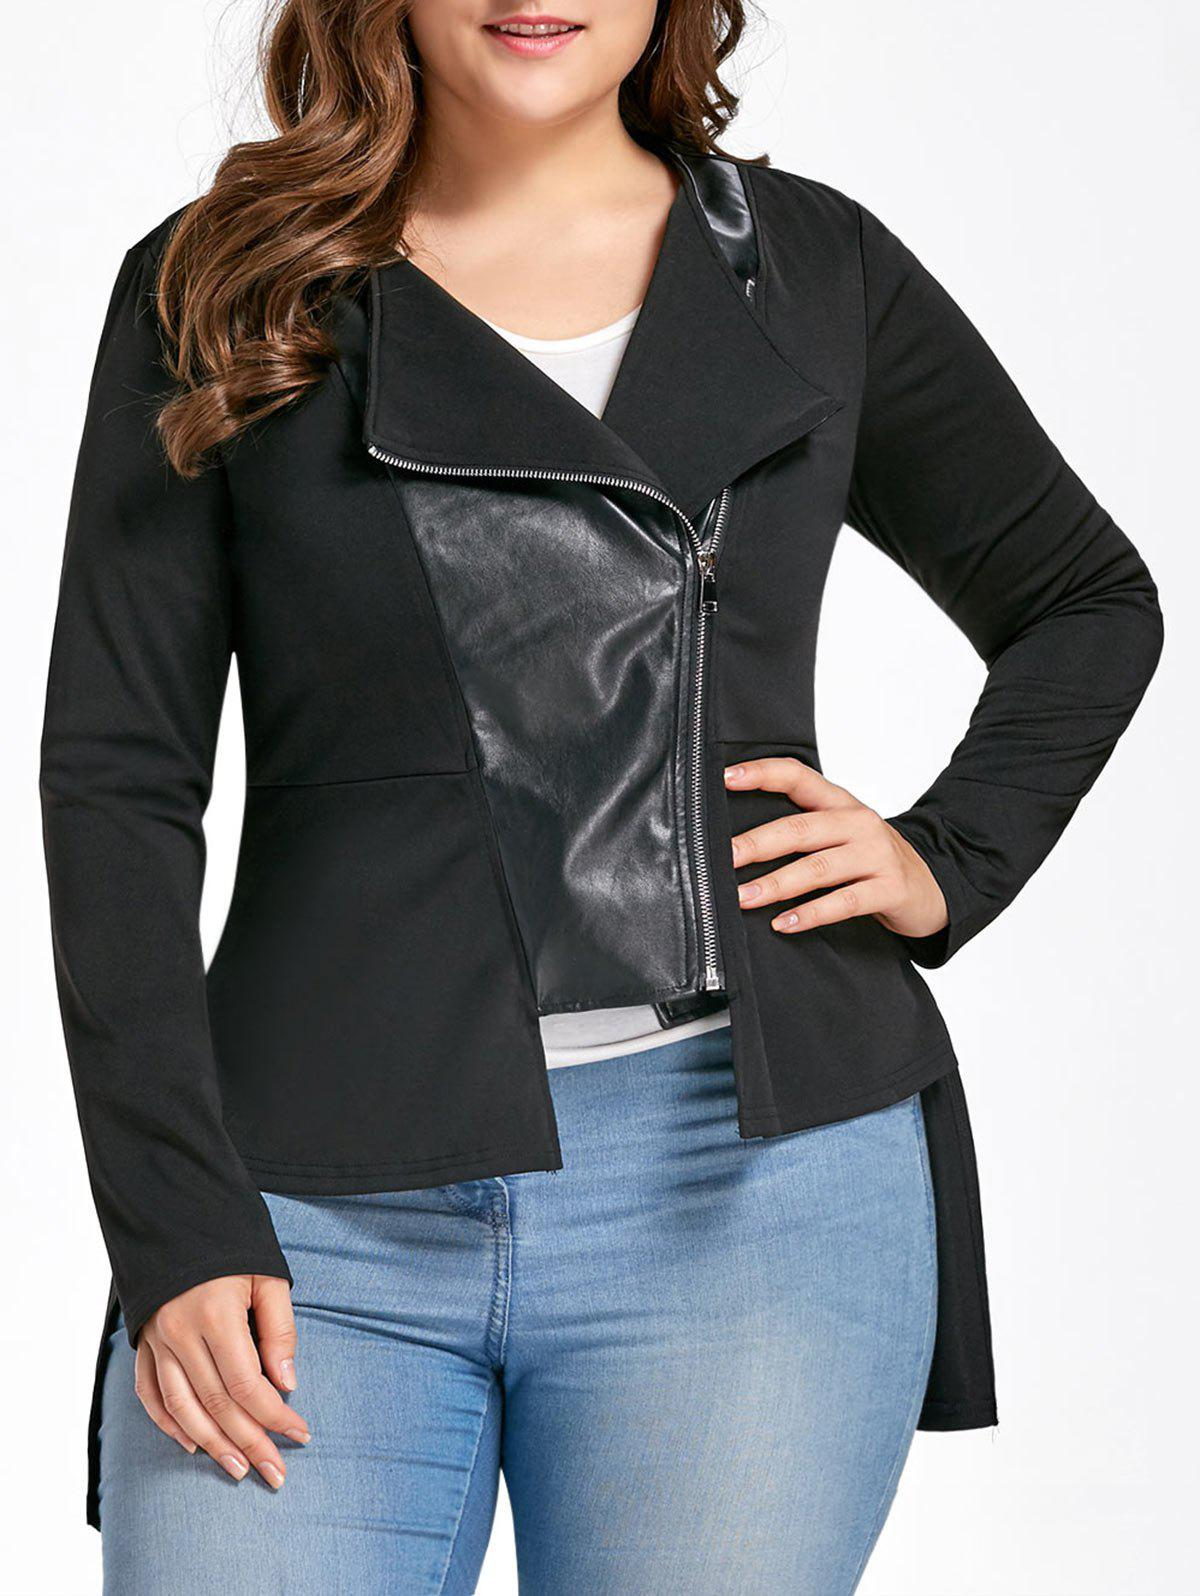 Plus Size PU Leather Insert High Low JacketWOMEN<br><br>Size: XL; Color: BLACK; Clothes Type: Jackets; Material: Cotton,Faux Leather,Polyester; Type: Asymmetric Length; Shirt Length: Long; Sleeve Length: Full; Collar: Collarless; Closure Type: Zipper; Pattern Type: Solid; Embellishment: Panel; Style: Fashion; Season: Fall,Spring; With Belt: No; Weight: 0.4200kg; Package Contents: 1 x Jacket;